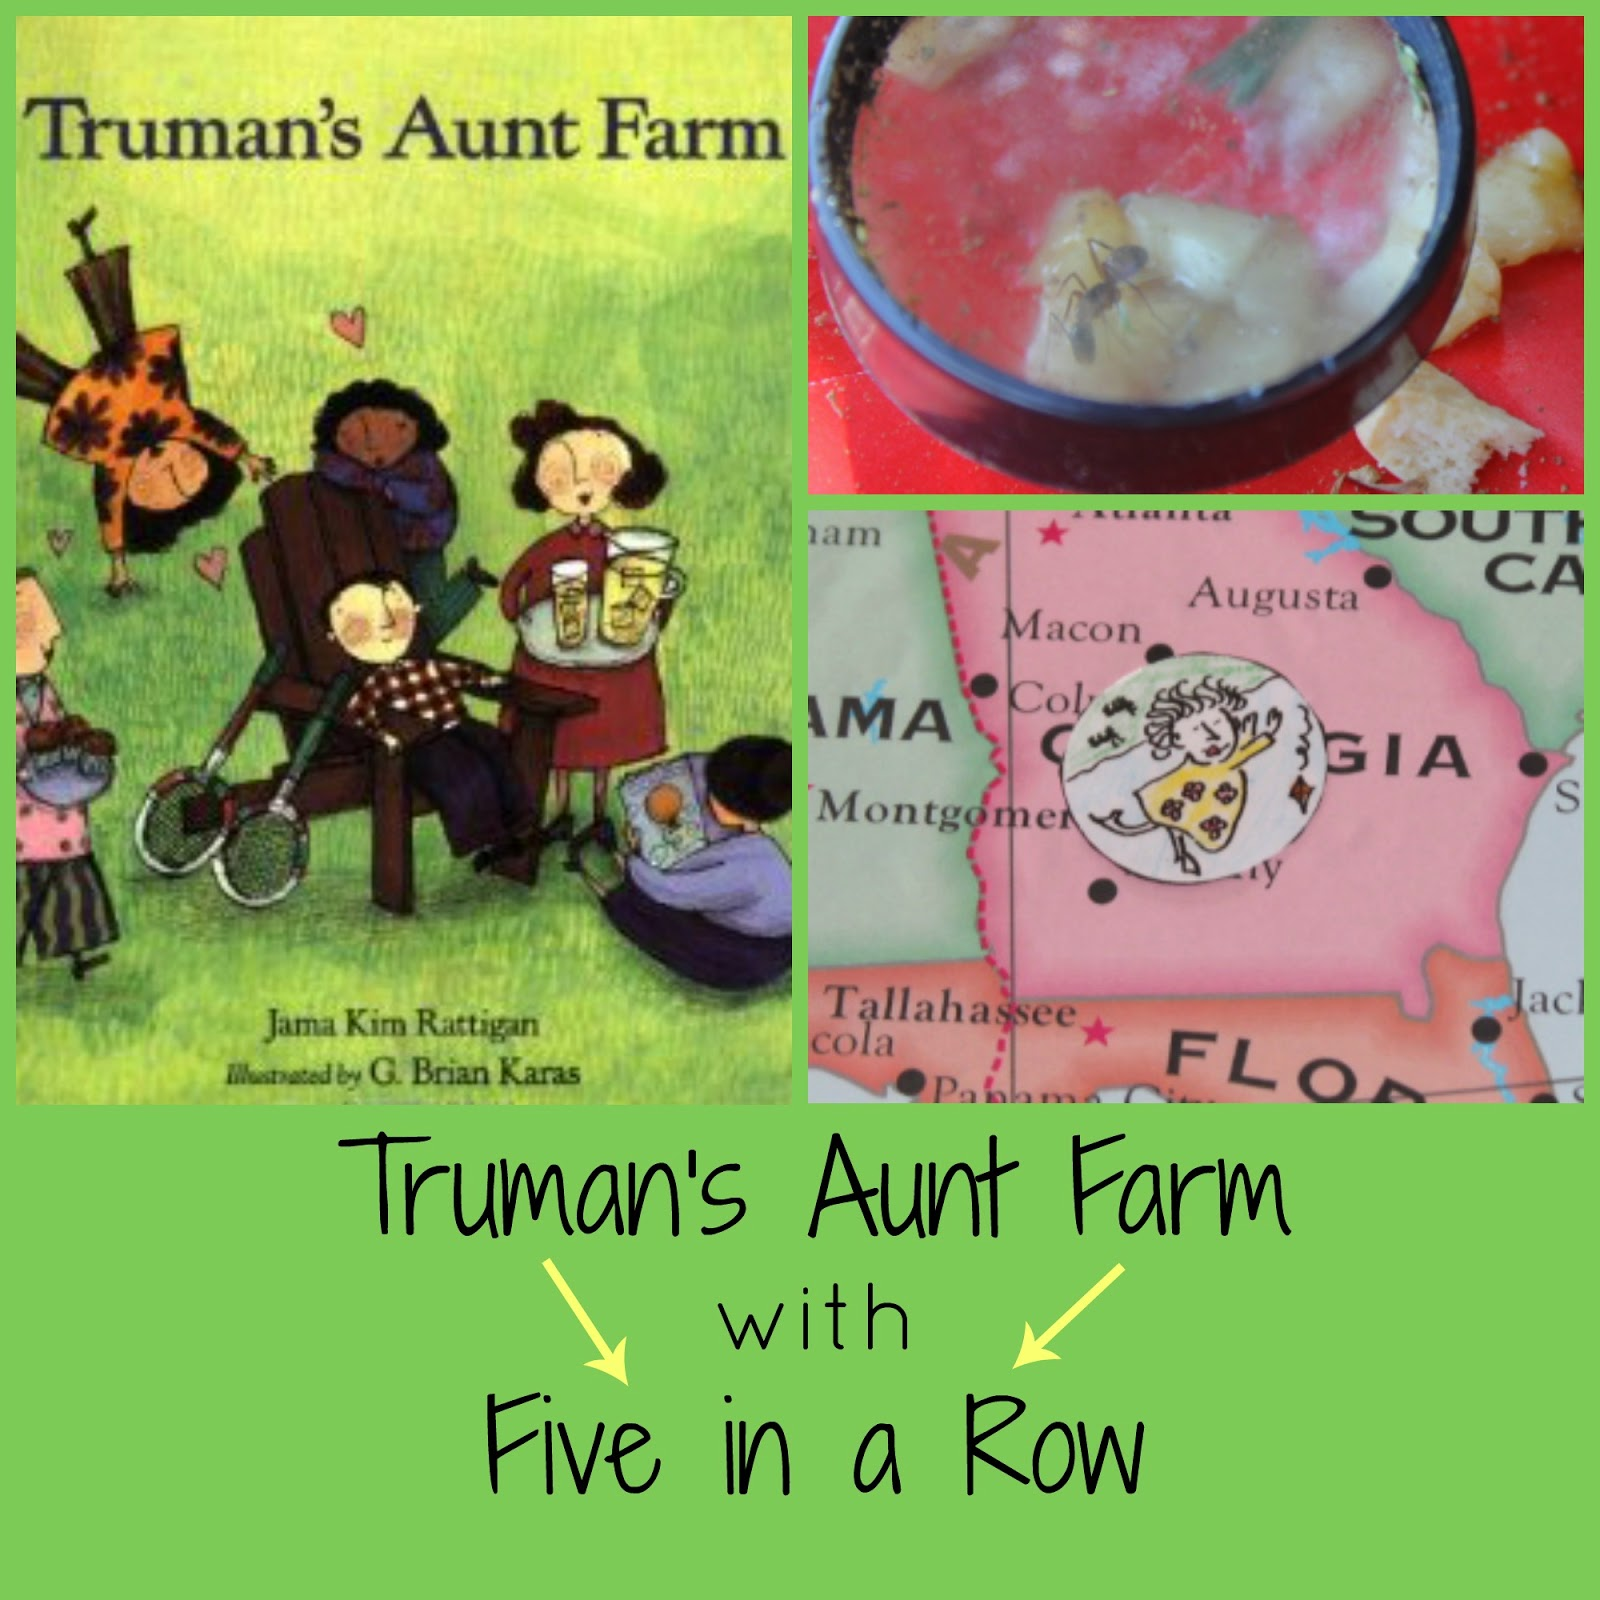 Truman's Aunt Farm with Five in a Row